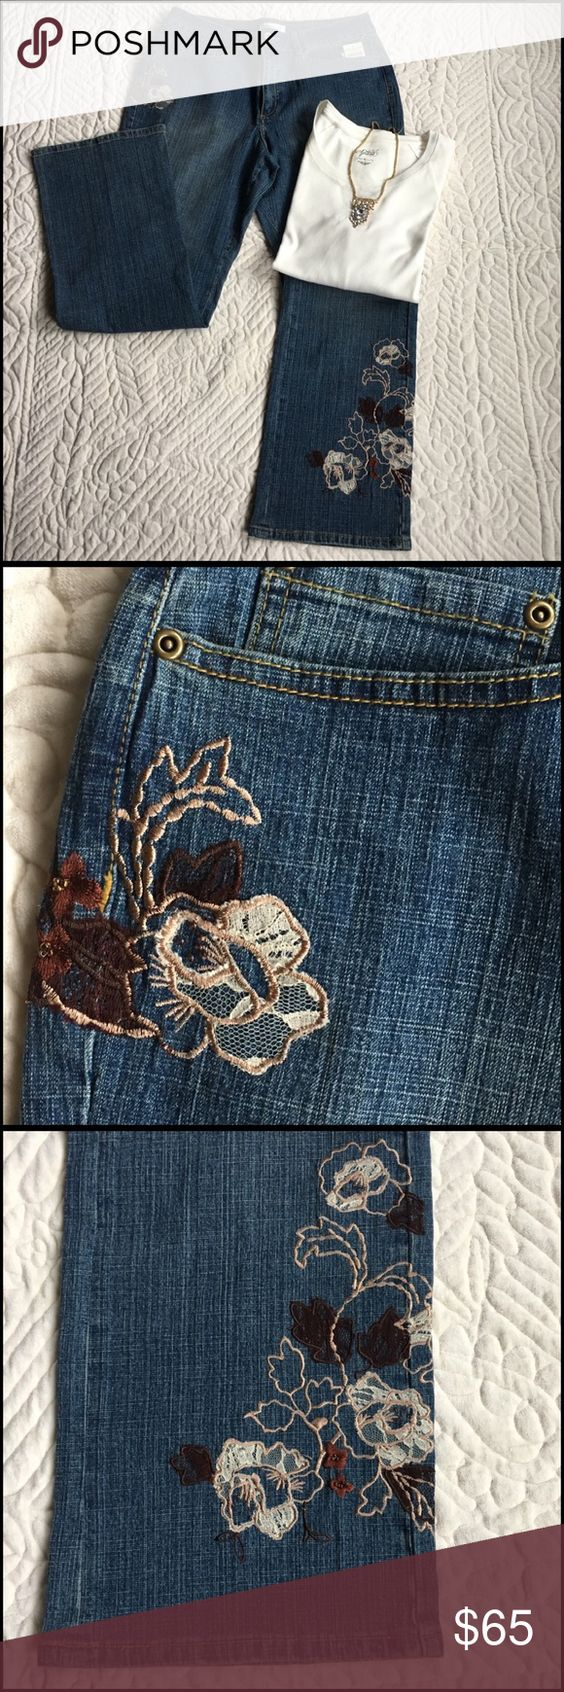 """Coldwater Creek Jeans And Top Set Set includes Embroidered/lace jeans and top. The jeans has Embroidery/lace design at the bottom on one leg and a top by one pocket. Two back Jean pockets, boot cut opening and a high waist / inseam is 31"""" waist button is 36"""" 90% Cotton 9% Poly 1% Spandex. Machine wash/dry. The top is a lightweight style sweatshirt. 3/4 length in sleeves. Size XL 60% Cotton 40% Poly length is 26"""" across the front only is 23"""" good stretch. bundle and Save 20% Coldwater Creek…"""